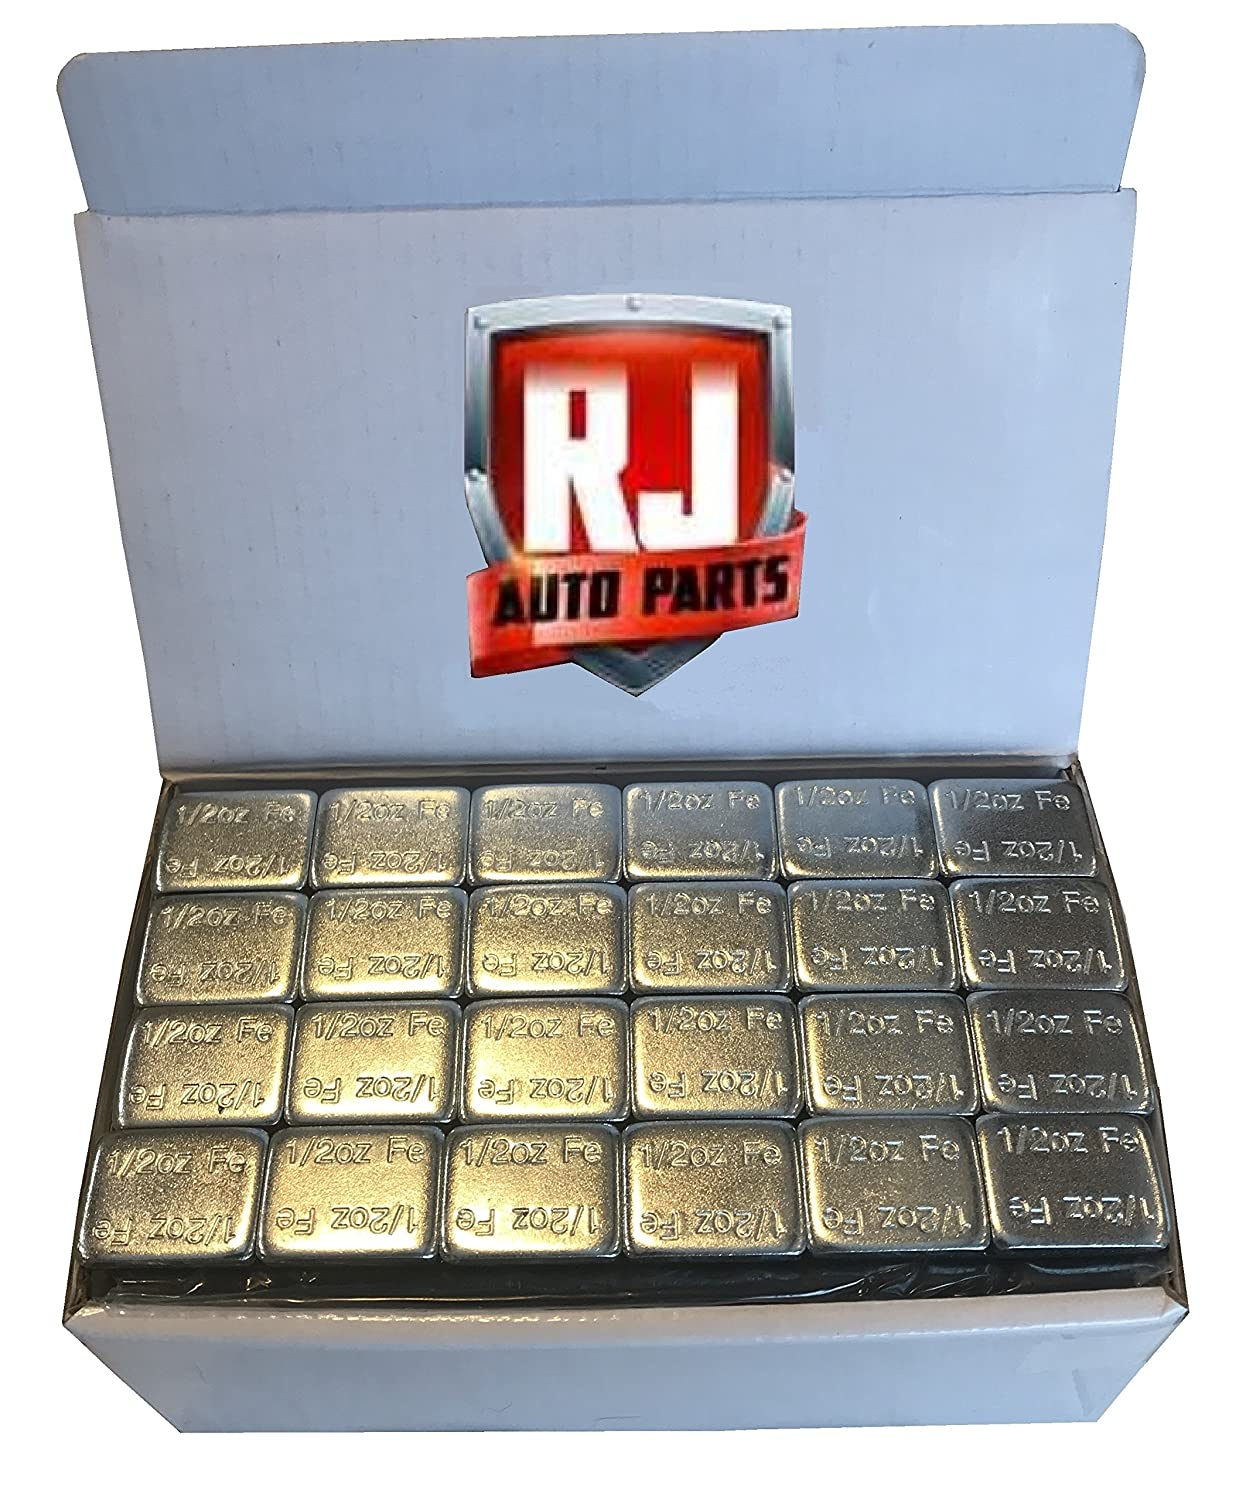 1 Box Wheel Weights, Zinc Plated, 1/2 oz. Stick-on Adhesive Tape (9 lbs) 288 Pieces, Lead Free RJ Auto Parts